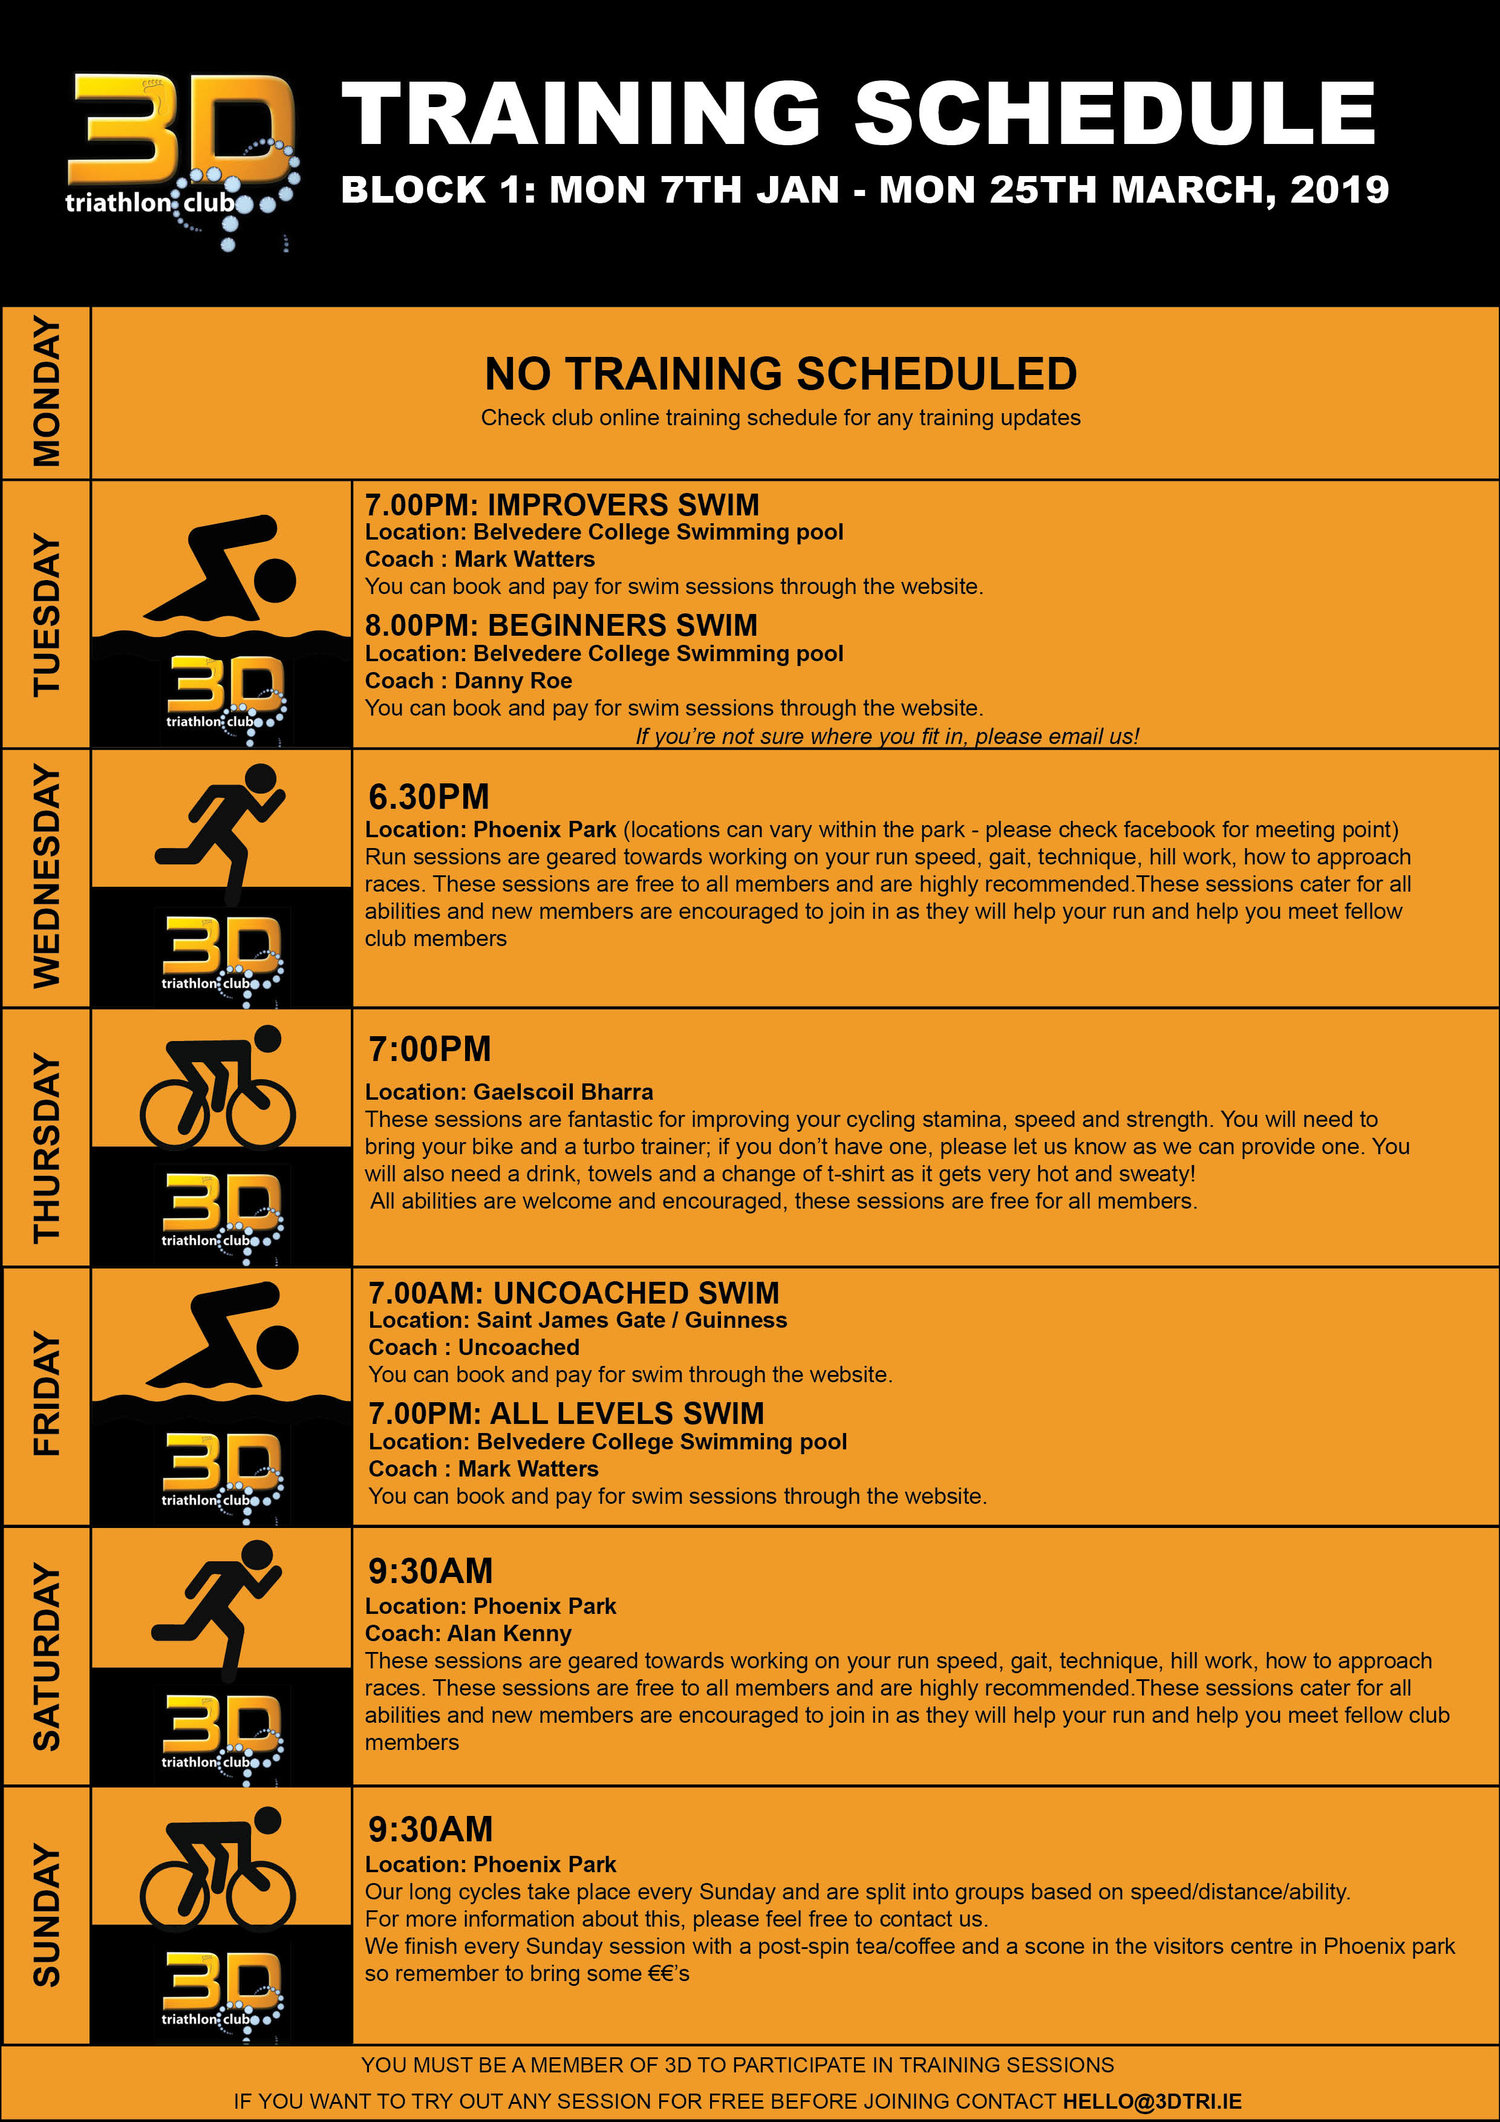 3D_TRAINING+SCHEDULE+TEMPLATE.jpg